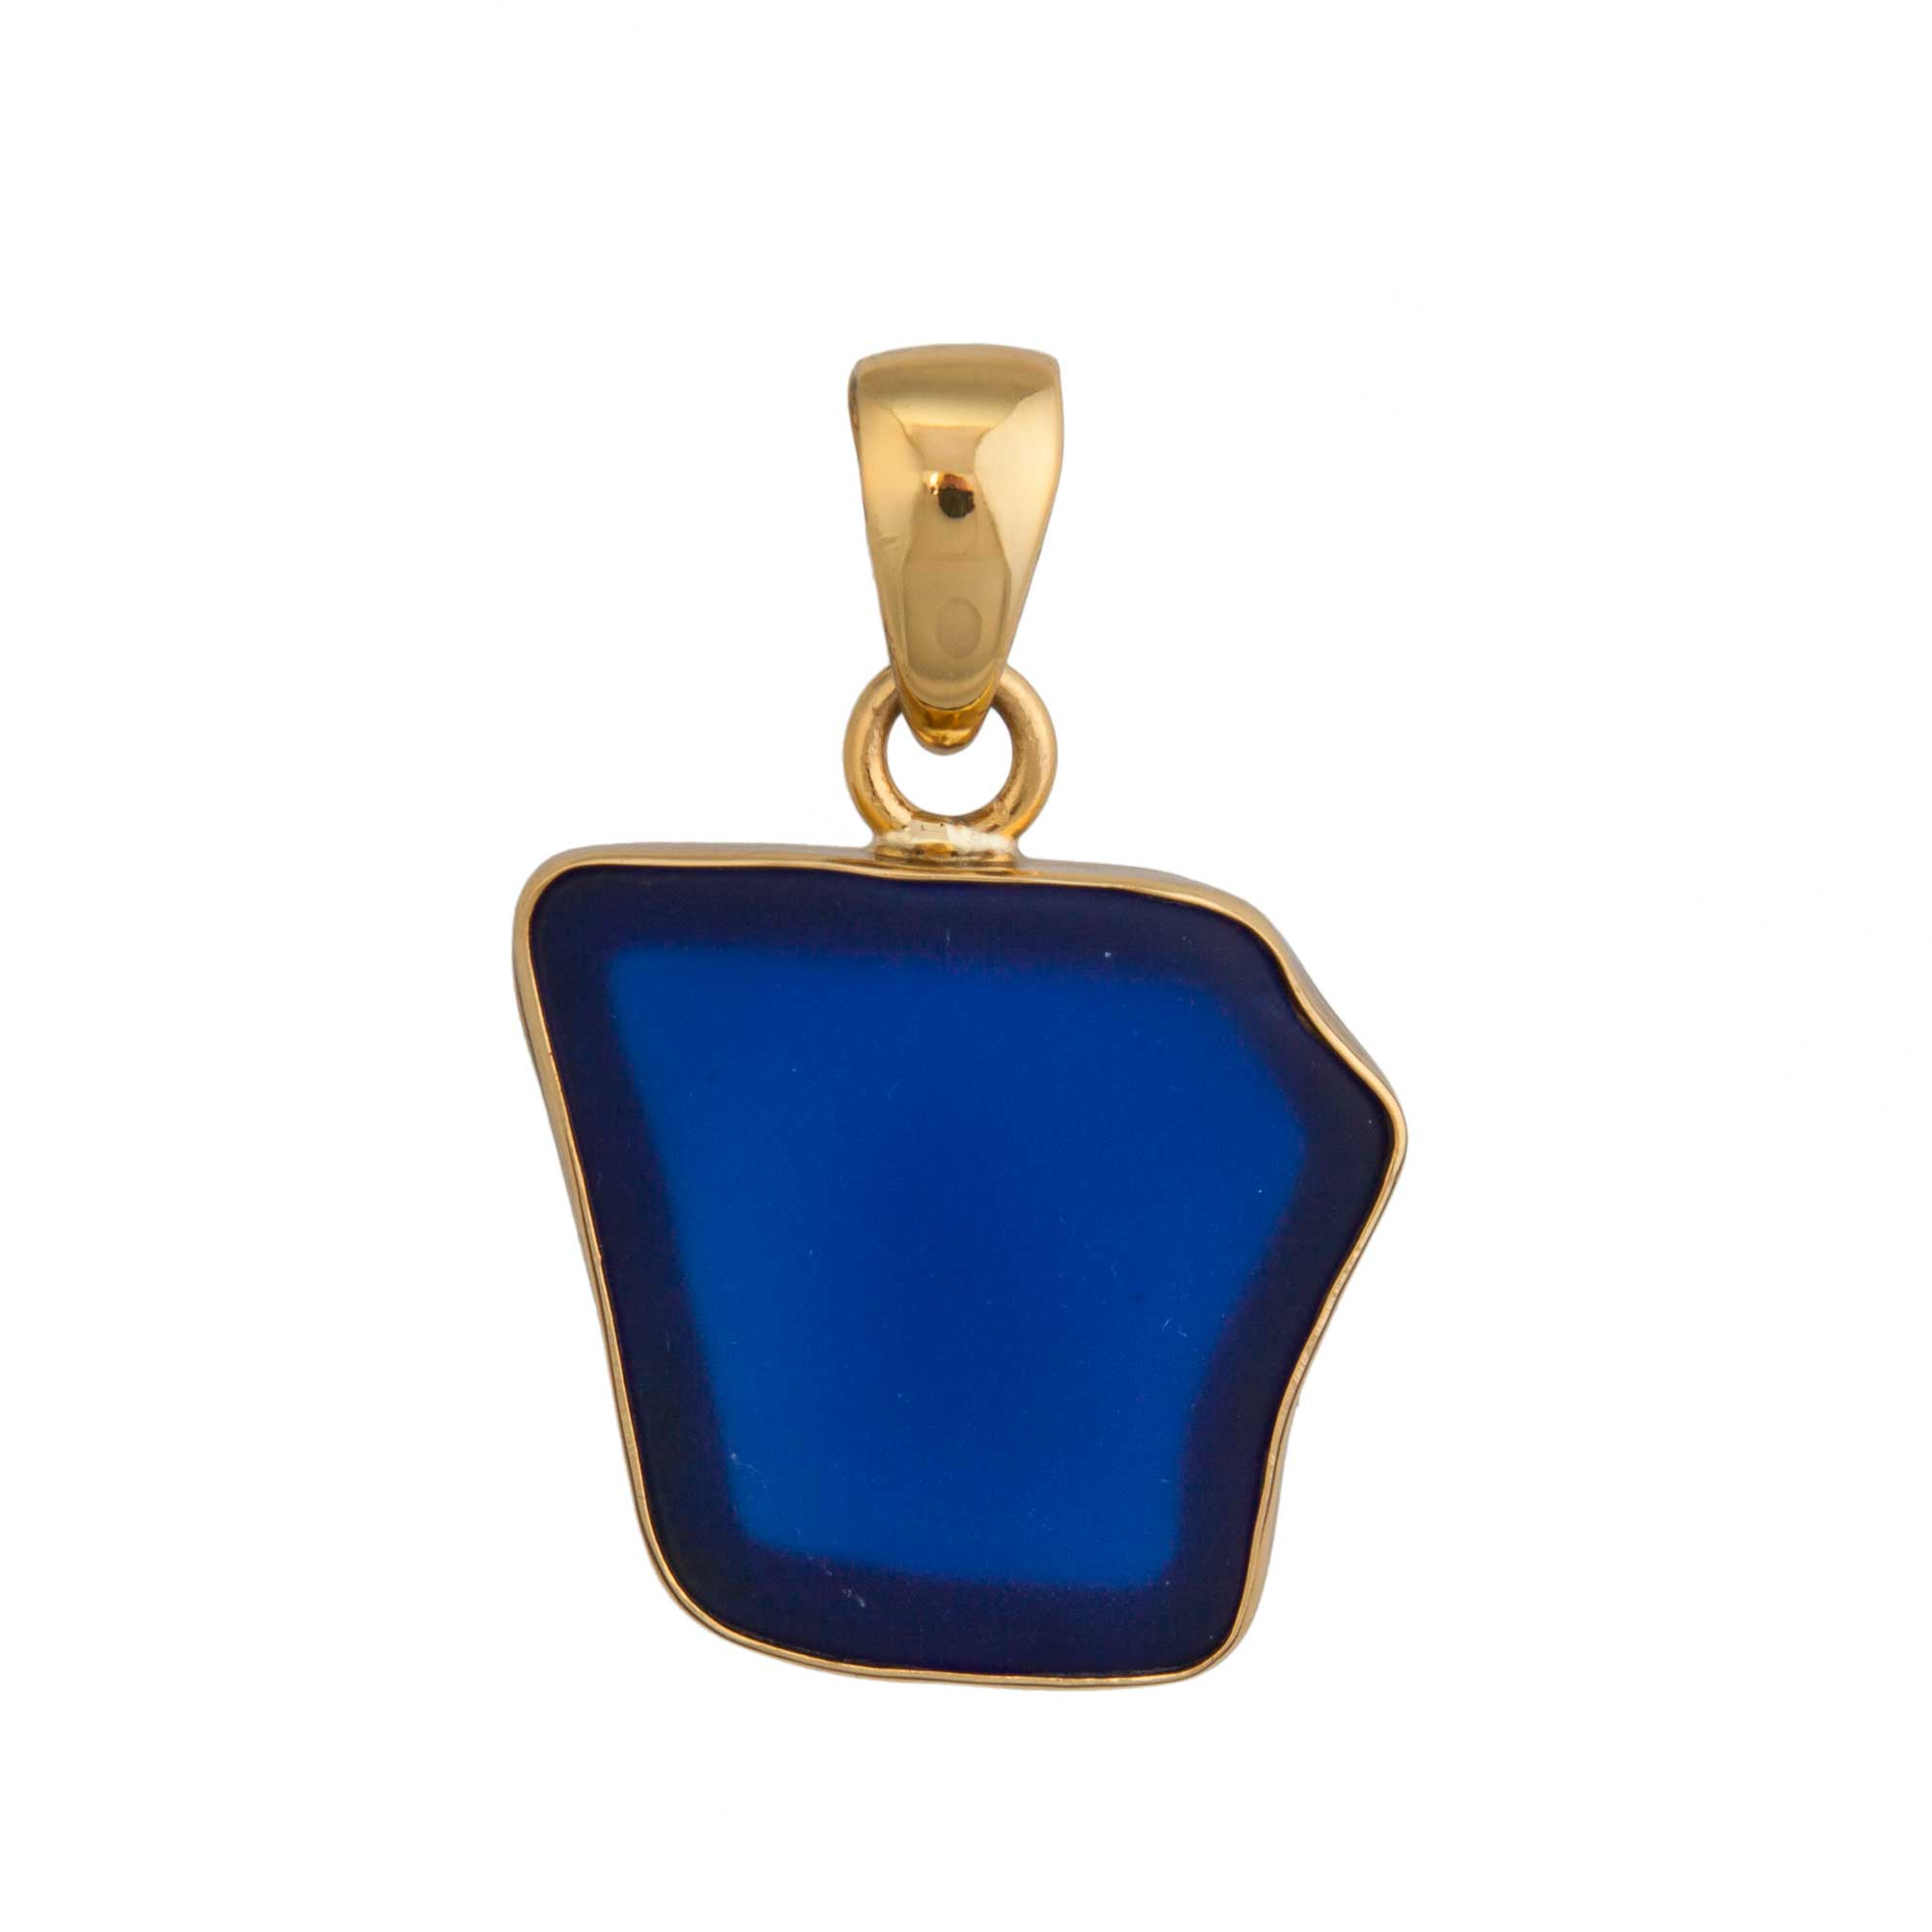 Alchemia Cobalt Recycled Glass Pendant | Charles Albert Jewelry